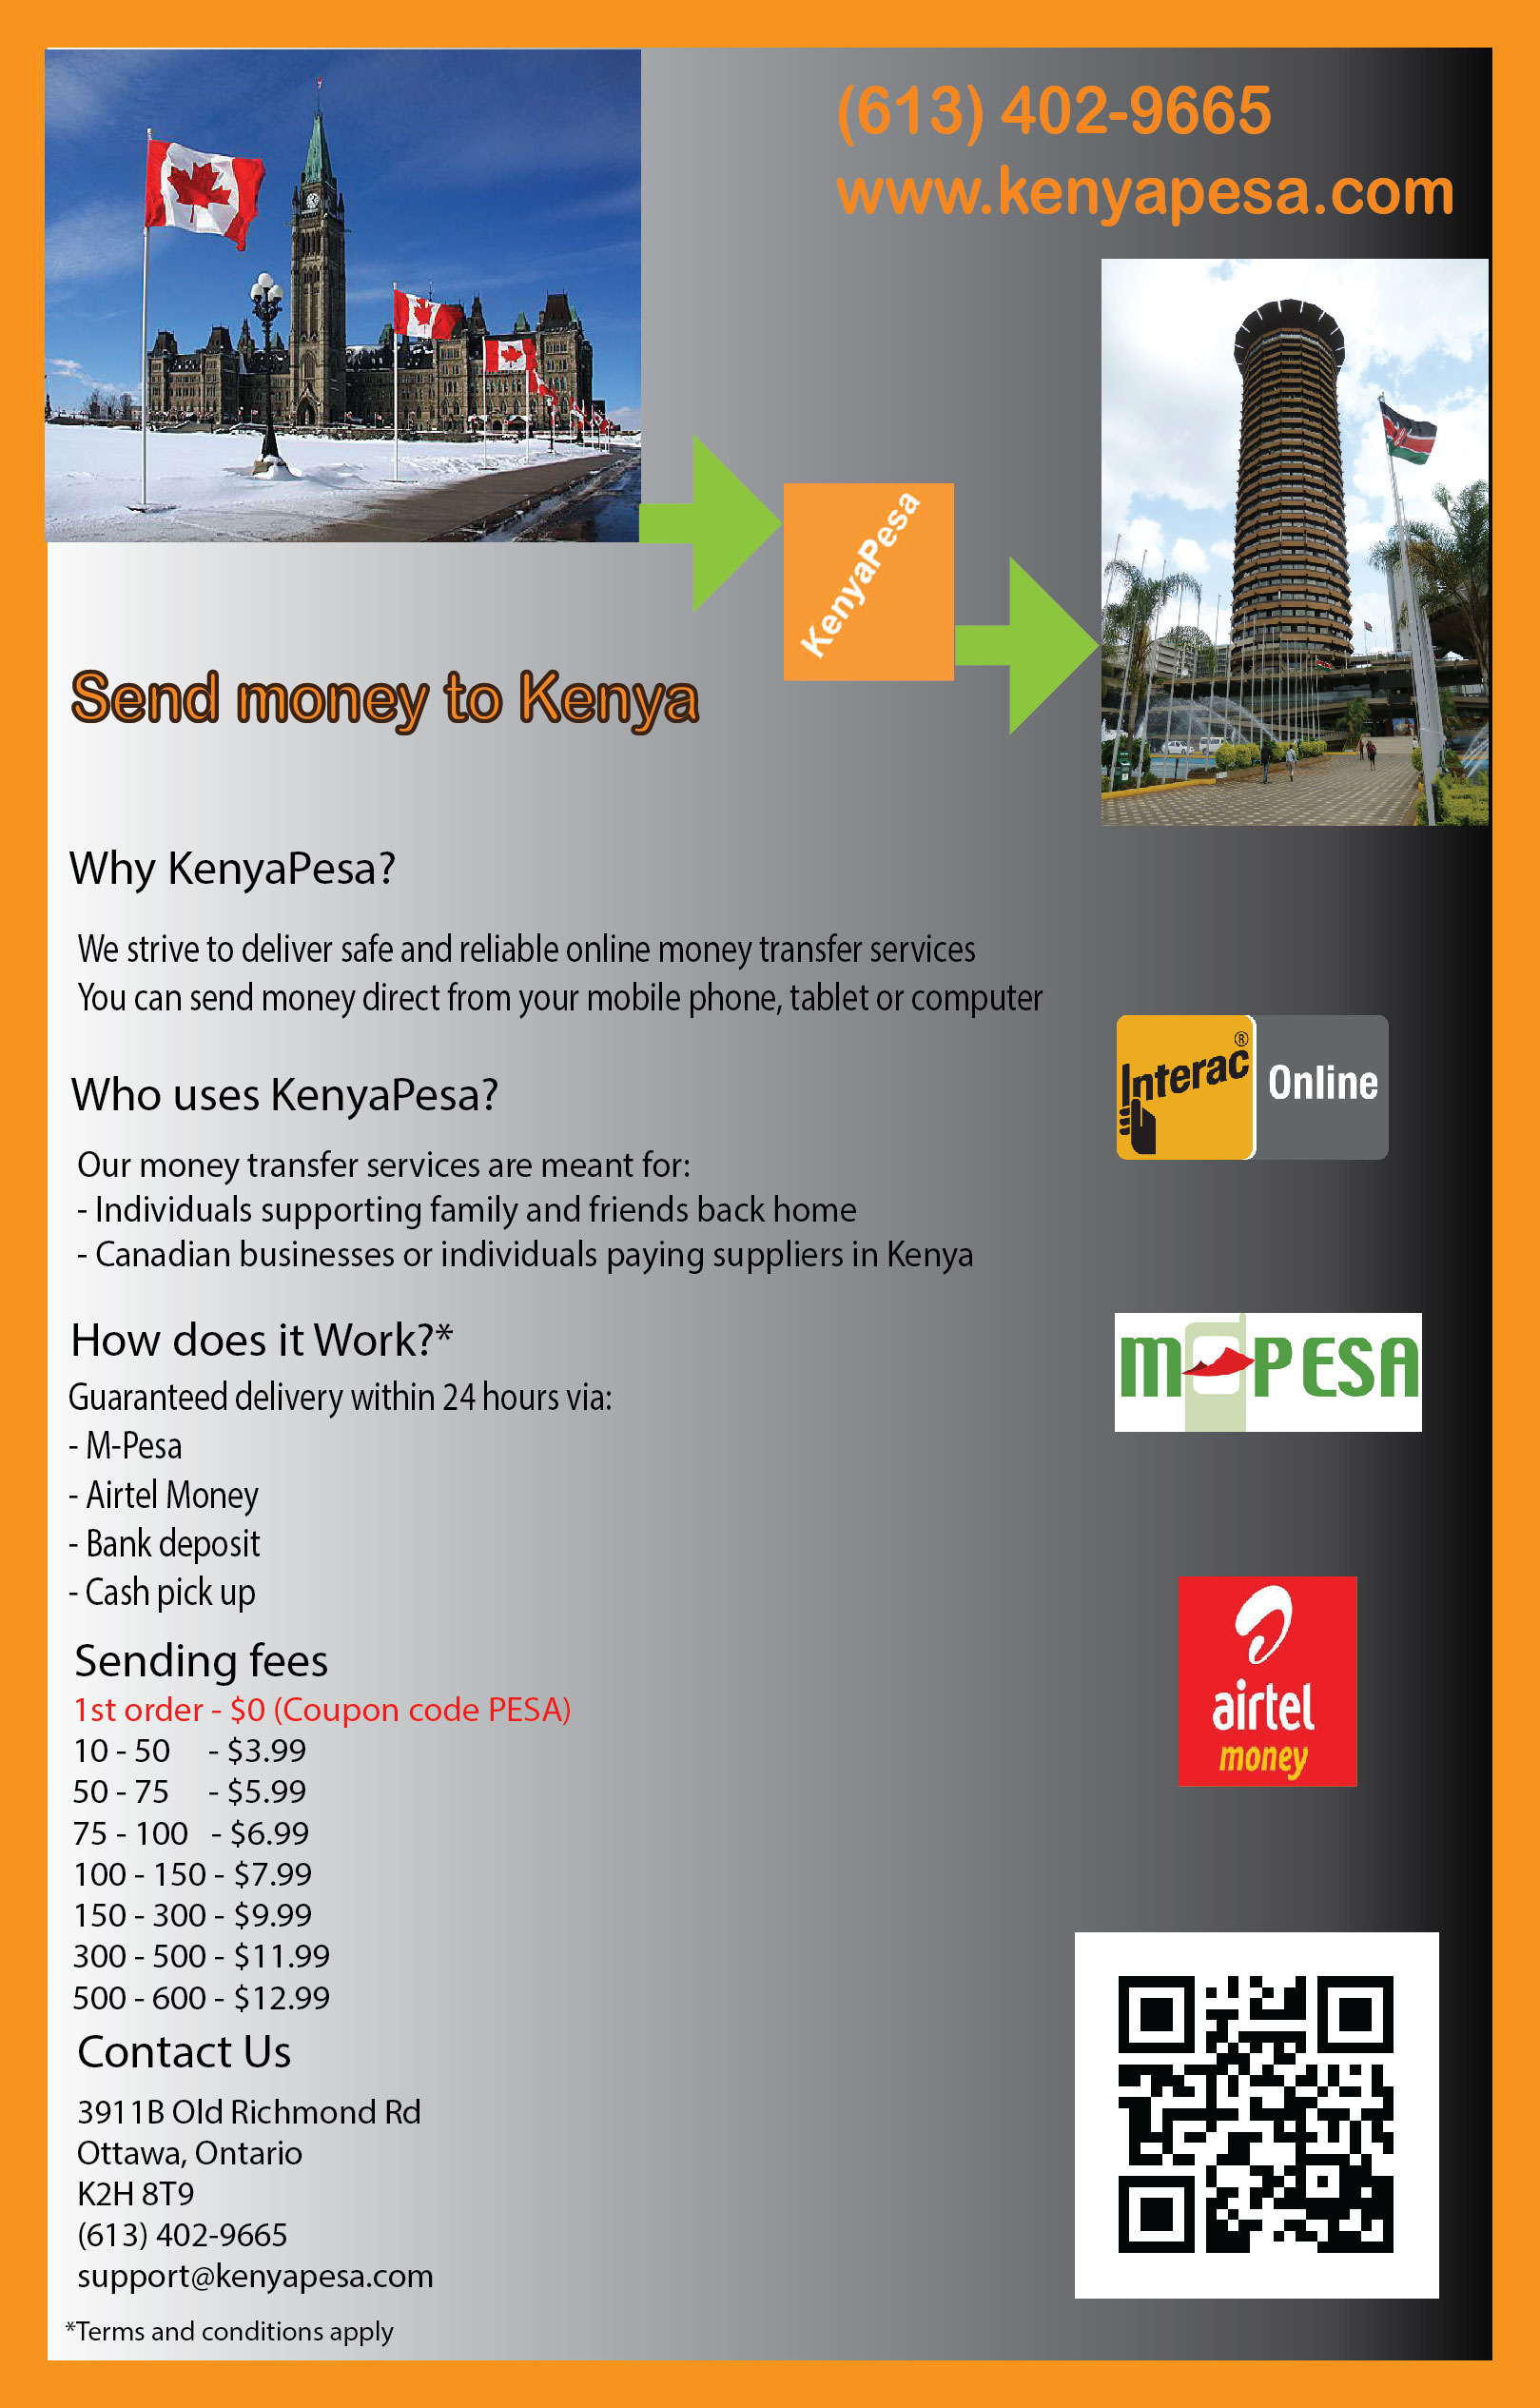 KenyaPesa Send Money to Kenya Fast Cheaply Flyer and Fees